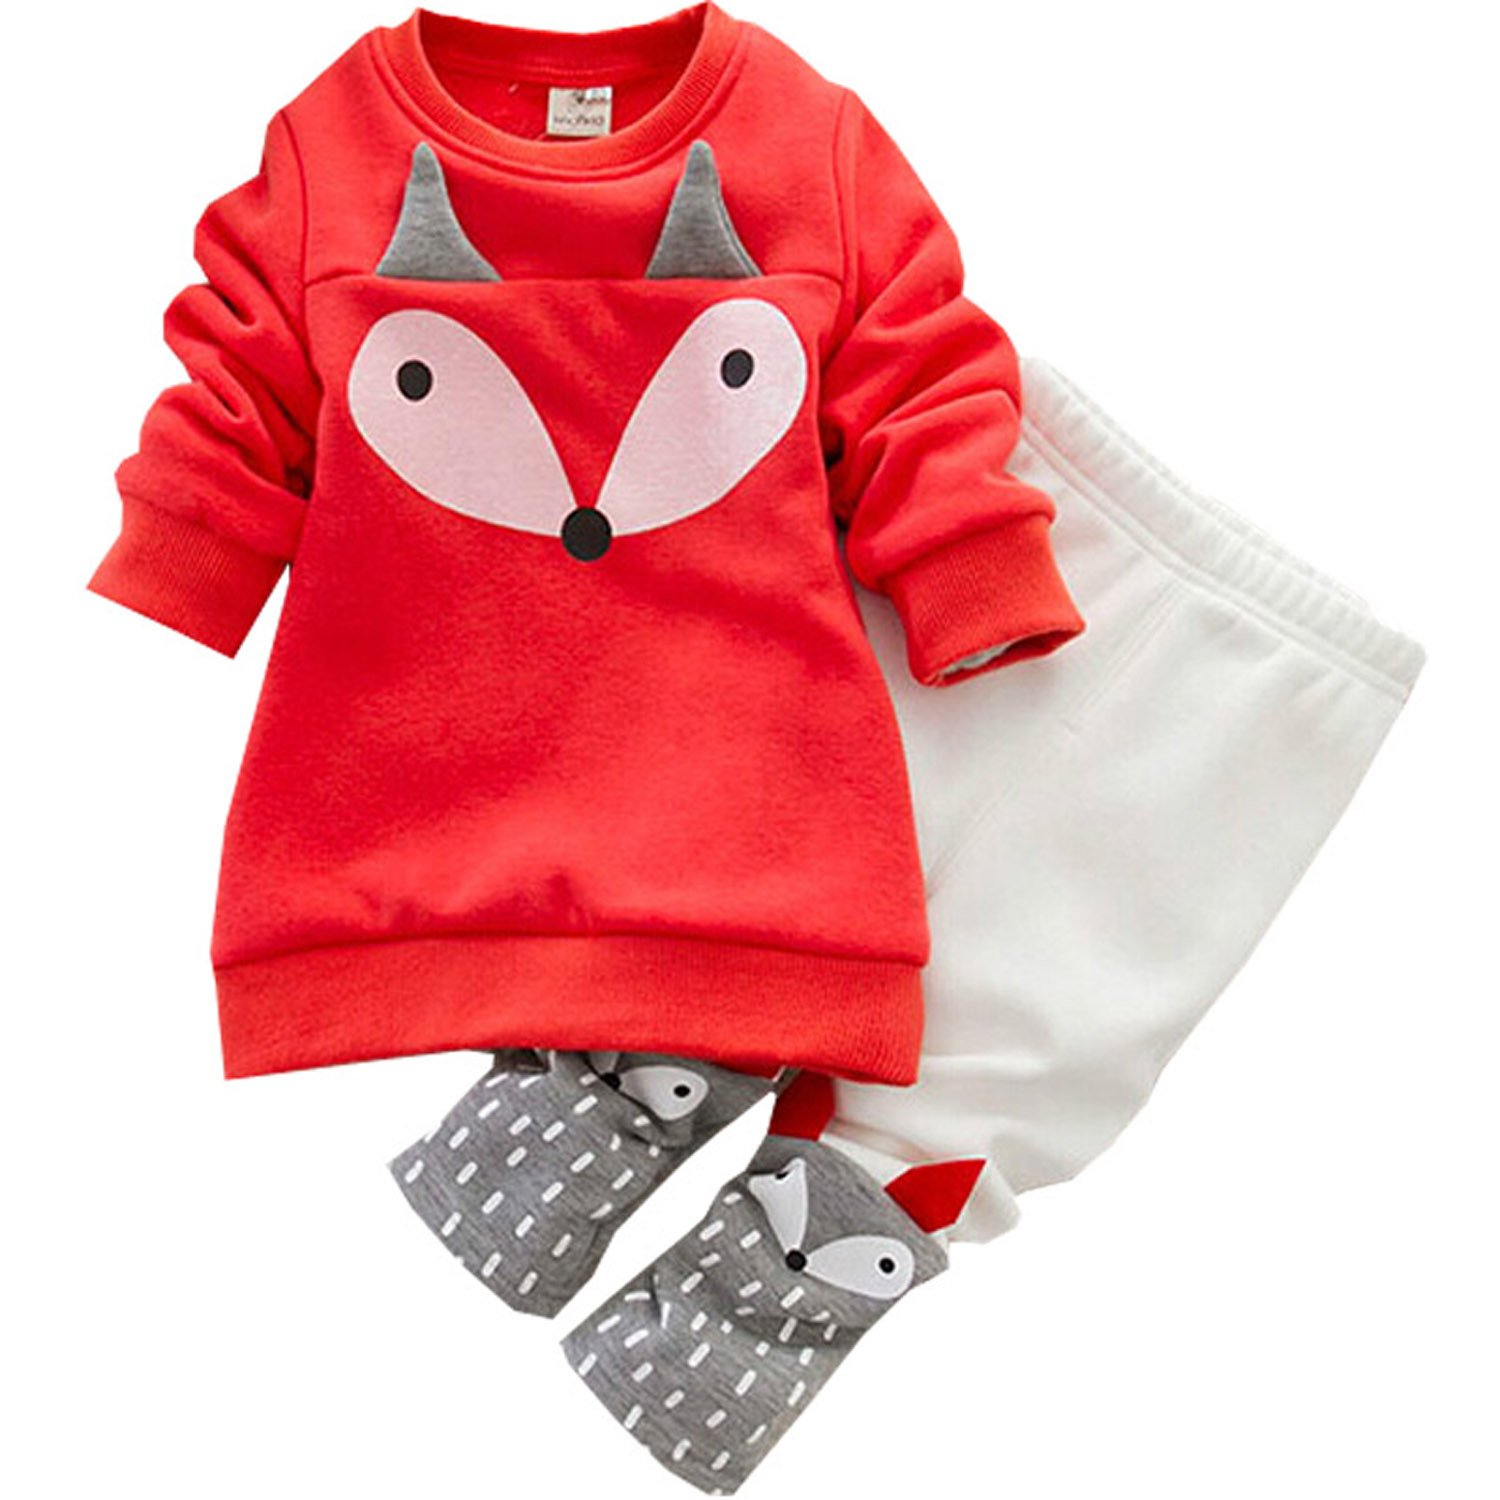 Baby Girls 2pcs Winter Outfits Long Sleeve Fox Print Fleece Sweatshirt + Pants Tracksuit Clothing Sets BABHSXHLTZ